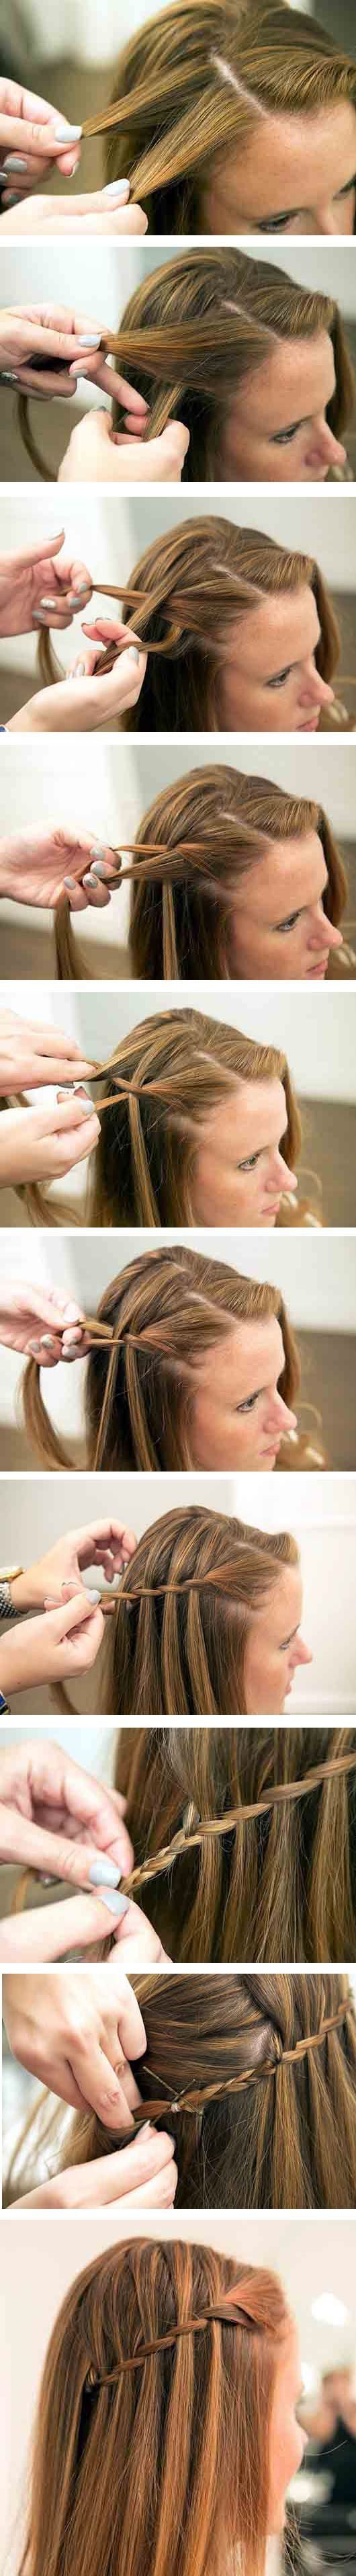 The Waterfall #braid Tutorial €� Step By Step I Need To Learn How To